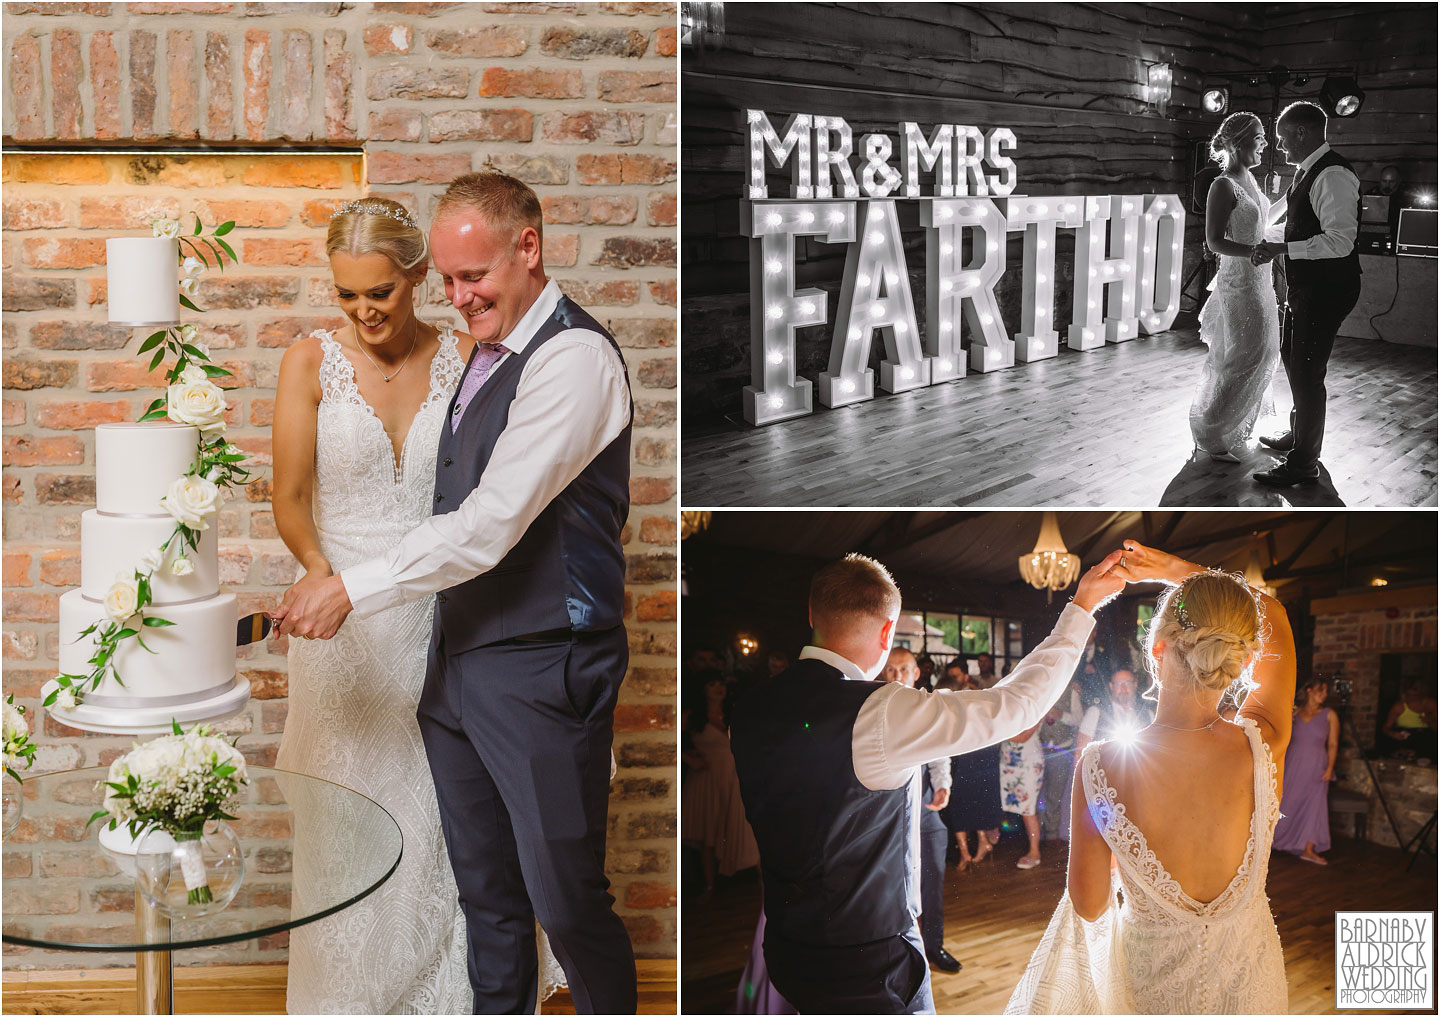 Cake cut and first dance wedding photo At The Oakwood, Wedding at The Oakwood at Ryther, Oakwood at Ryther wedding photographer, The Oakwood at Ryther wedding photos, Stylish Yorkshire wedding barn venue